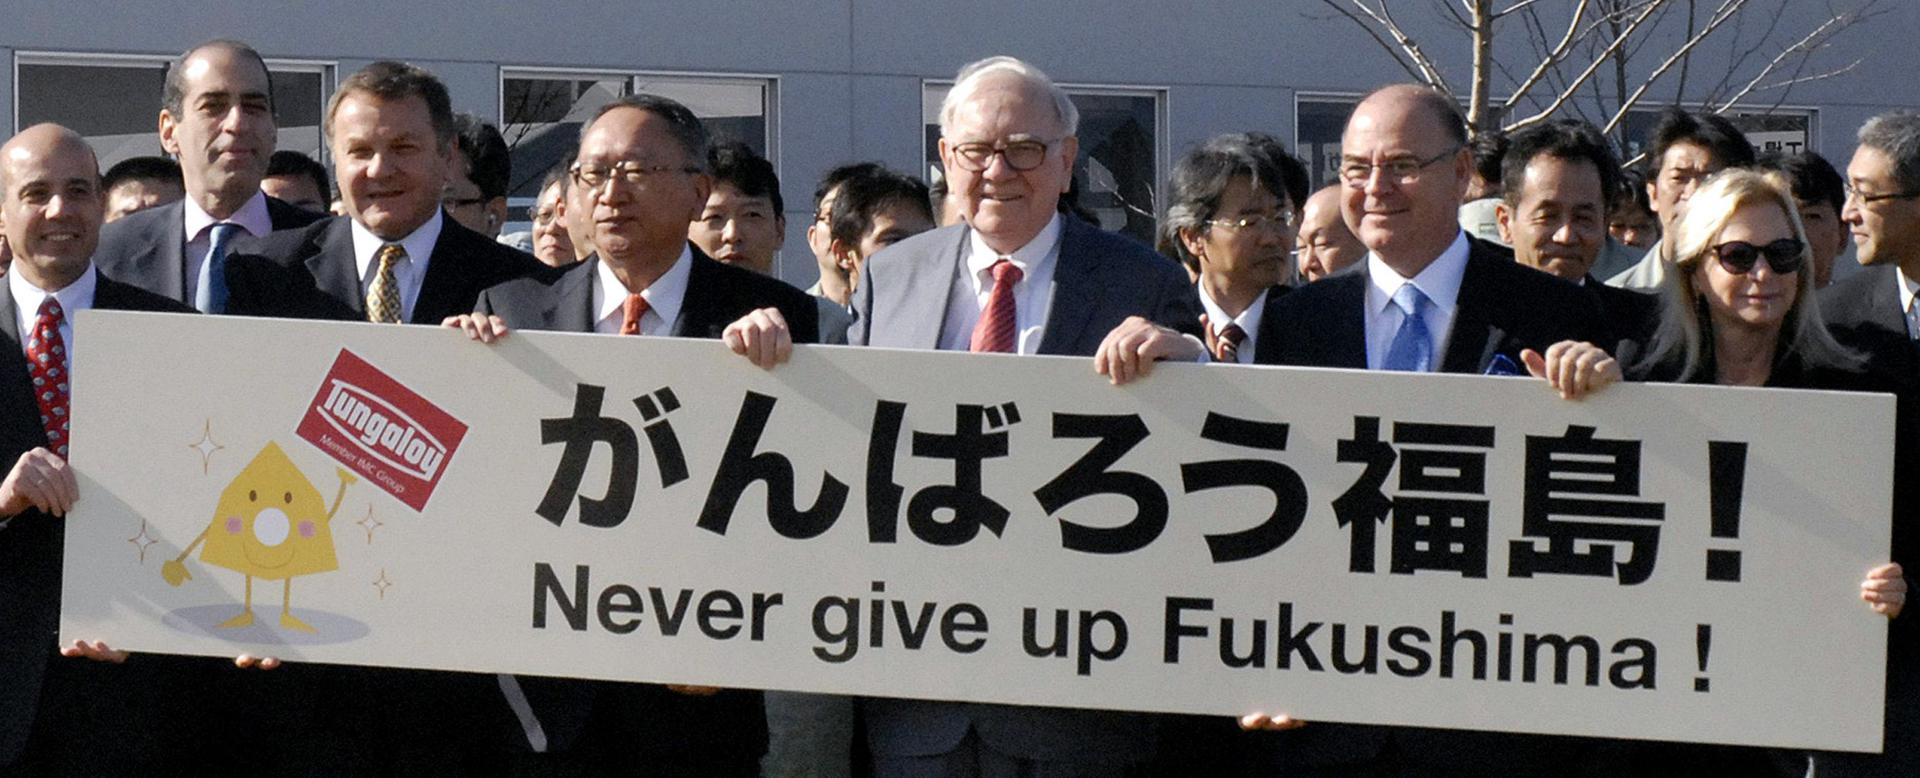 Warren Buffett attends the opening ceremony of a factory of machinery maker Tungaloy in the city of Iwaki, Fukushima prefecture on November 21, 2011. Tungaloy is a member of the International Metalworking Companies (IMC), which is owned by Berkshire Hathaway.Photo: JIJI PRESS/AFP via Getty Images